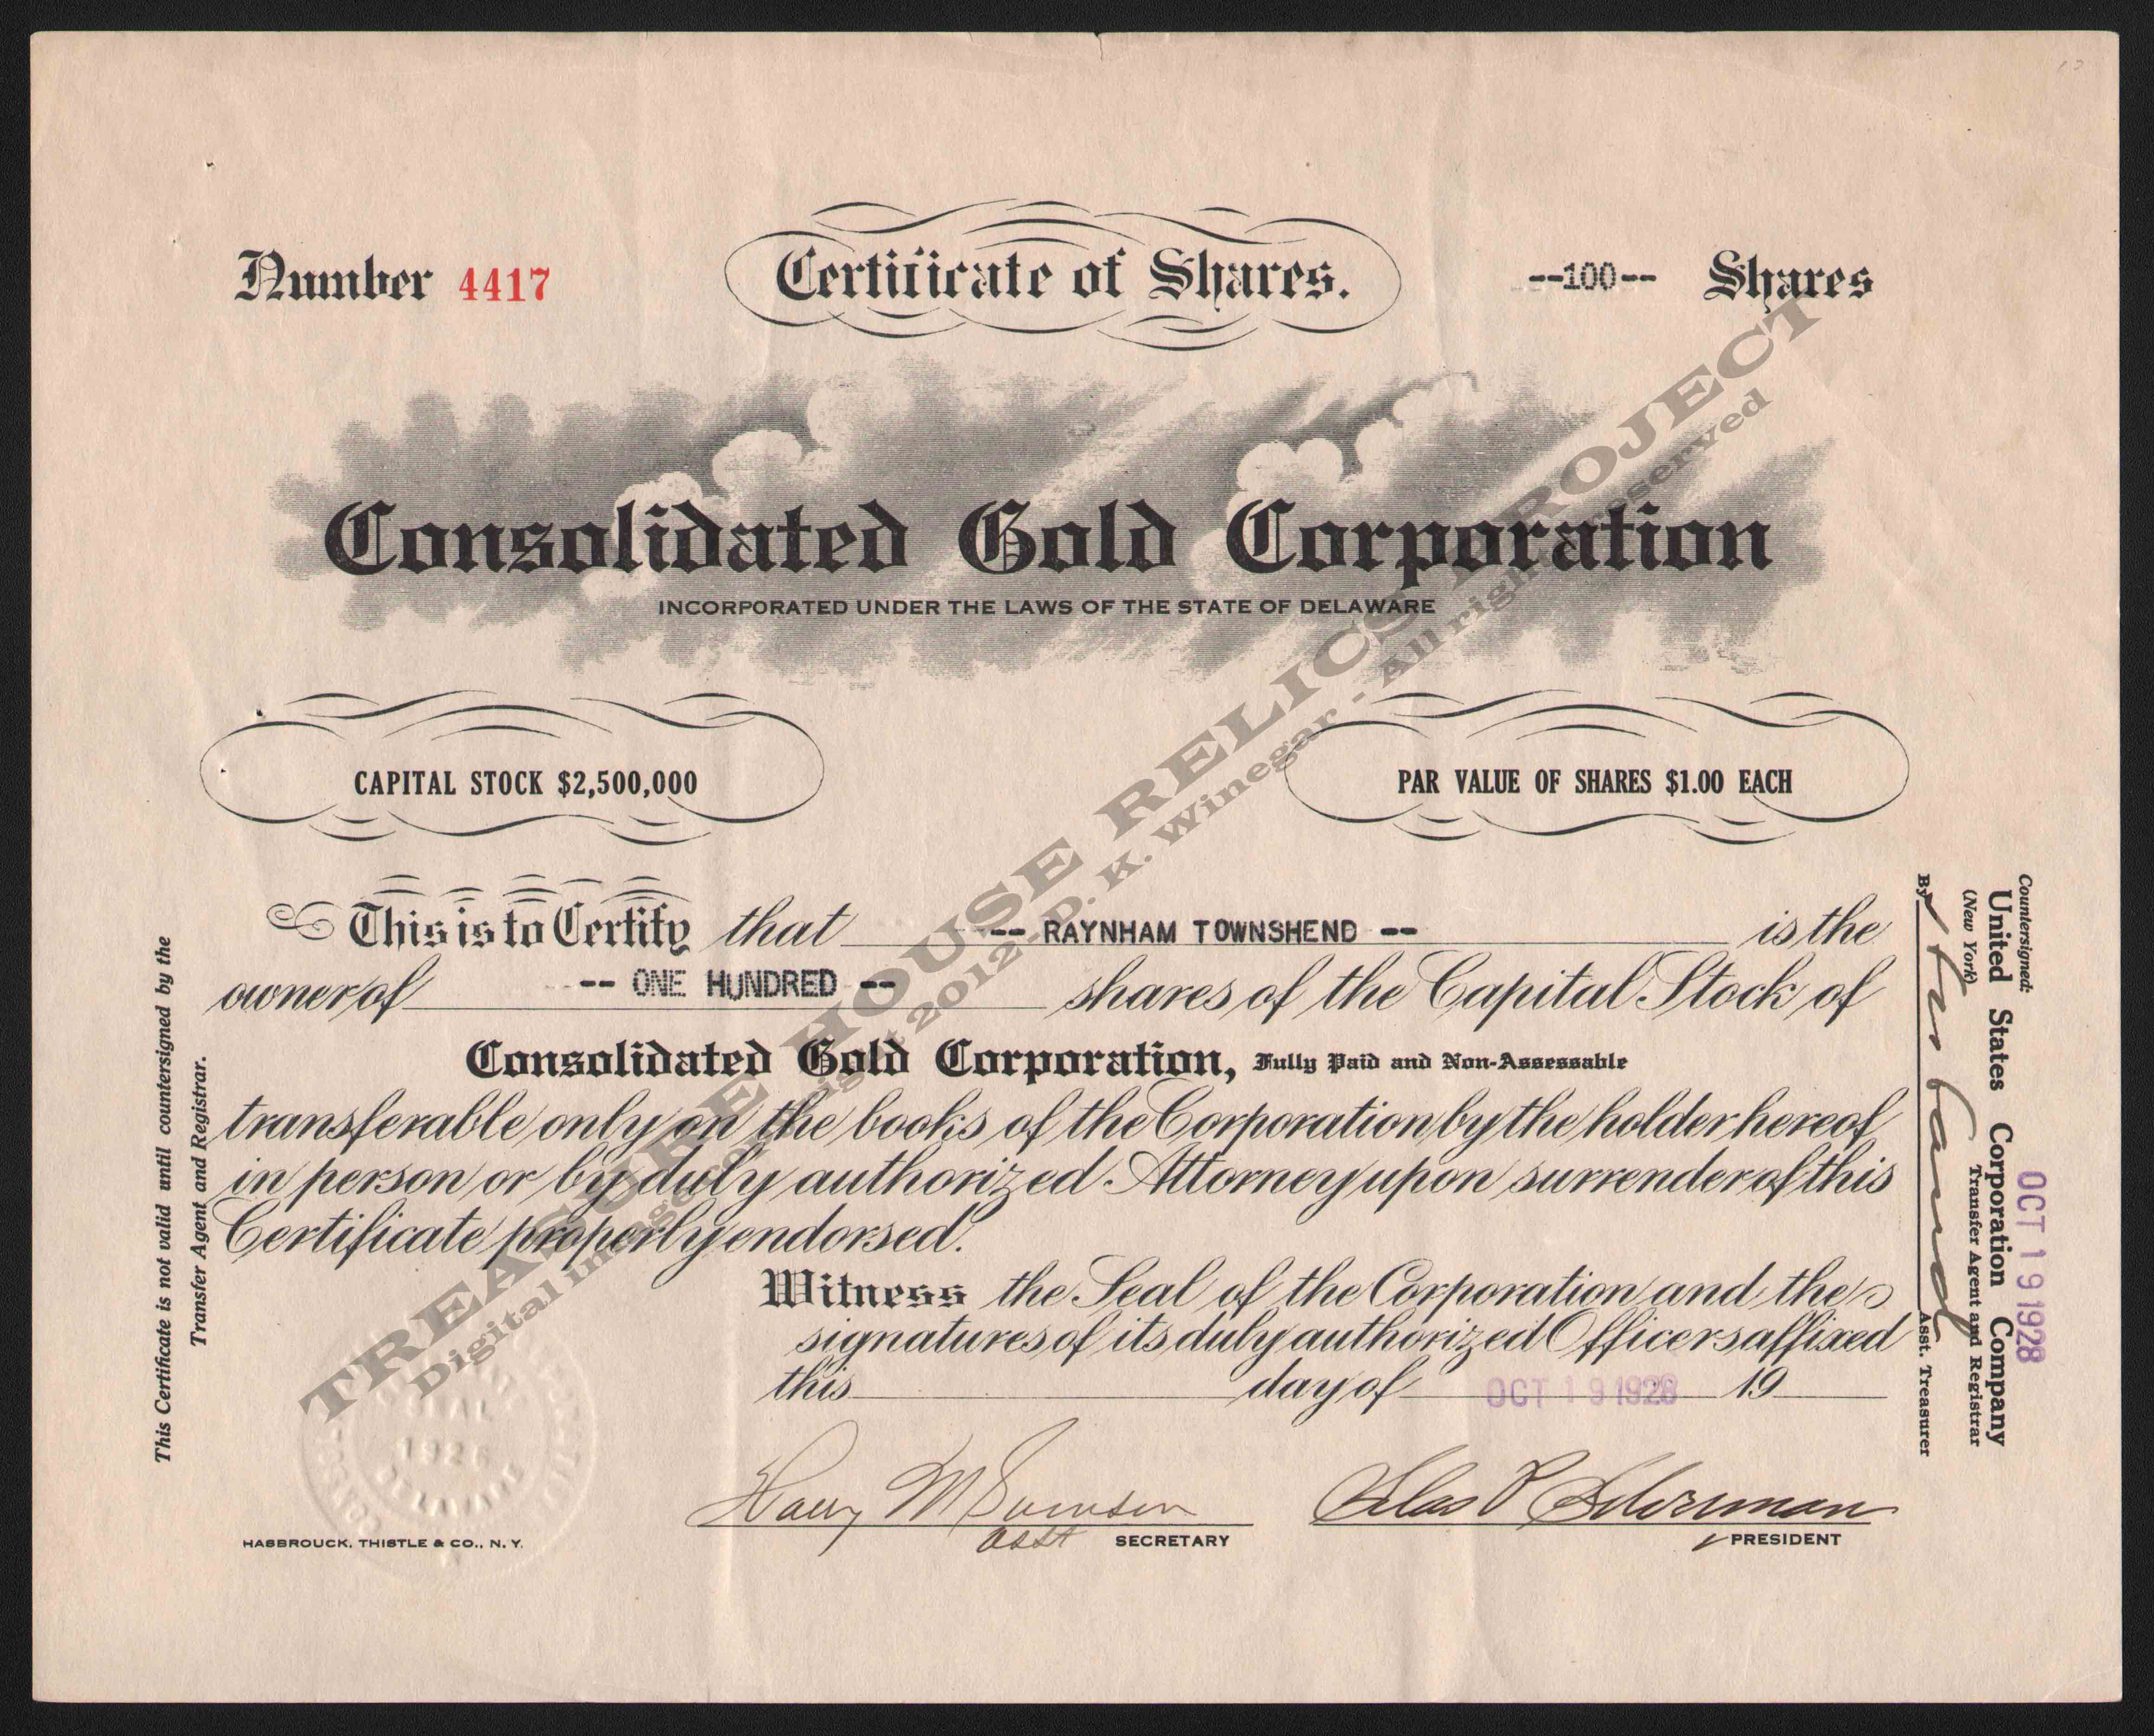 LETTERHEAD/ARCHIVE_16026_-_STOCK_-_CONSOLIDATED_GOLD_CORPORATION_4417_1928_400_CROP_EMBOSS.jpg